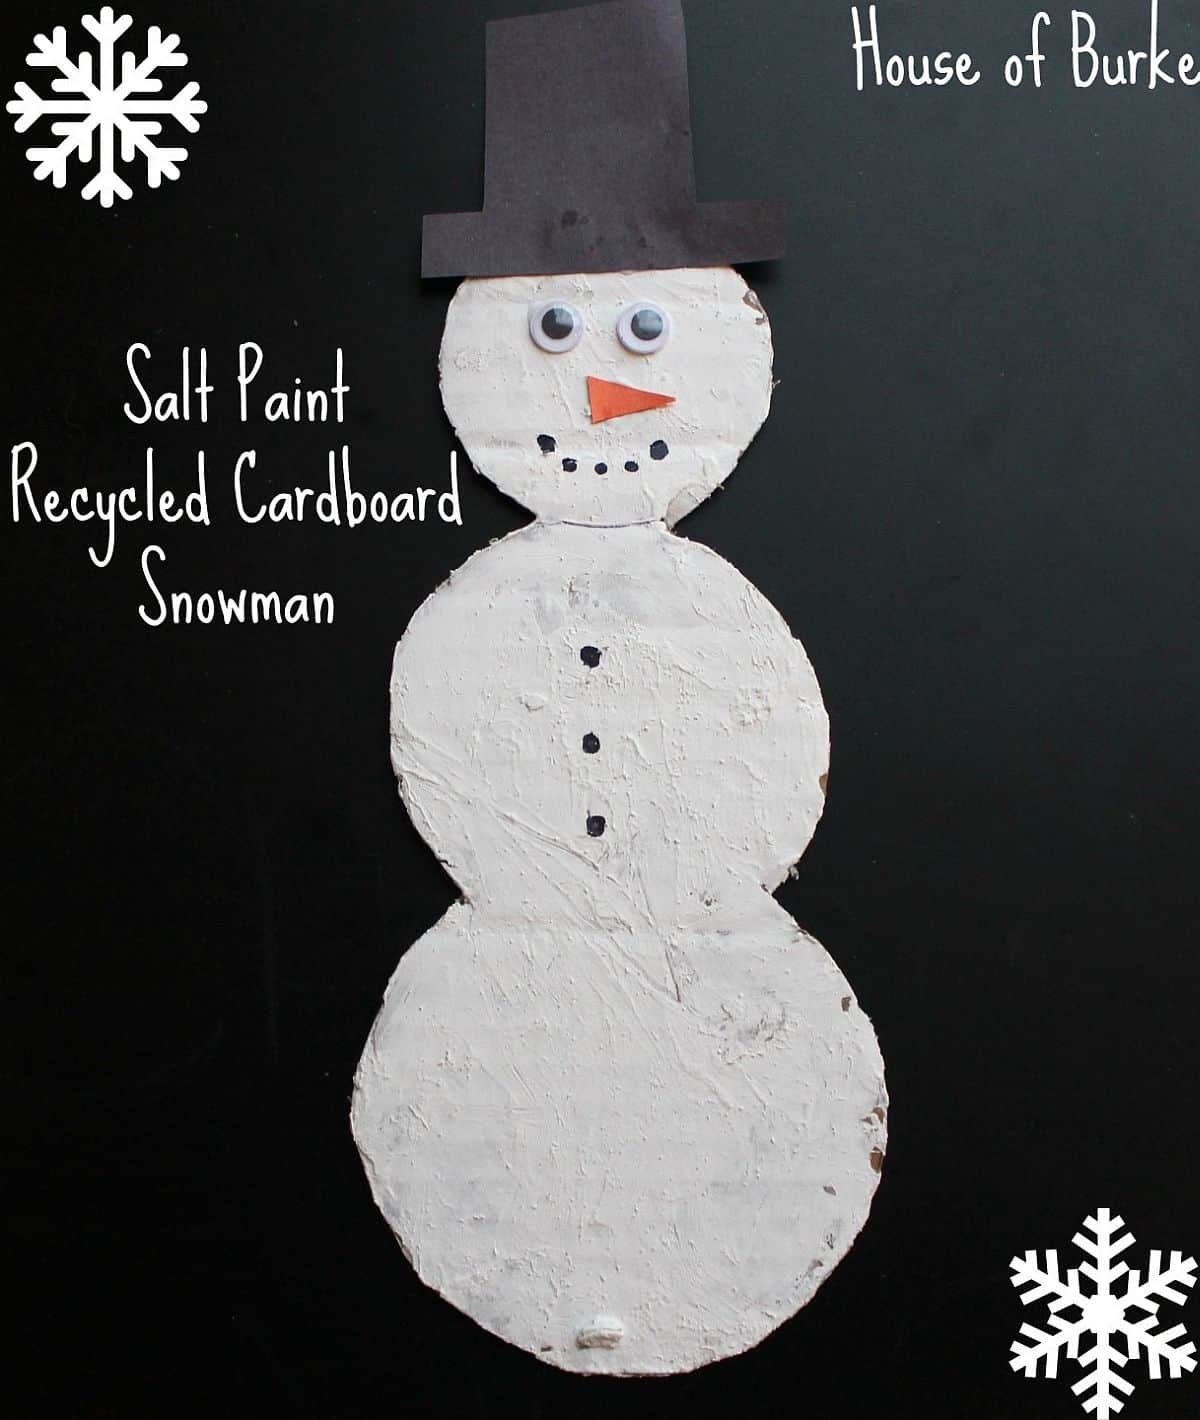 Salt paint recycled cardboard snowman